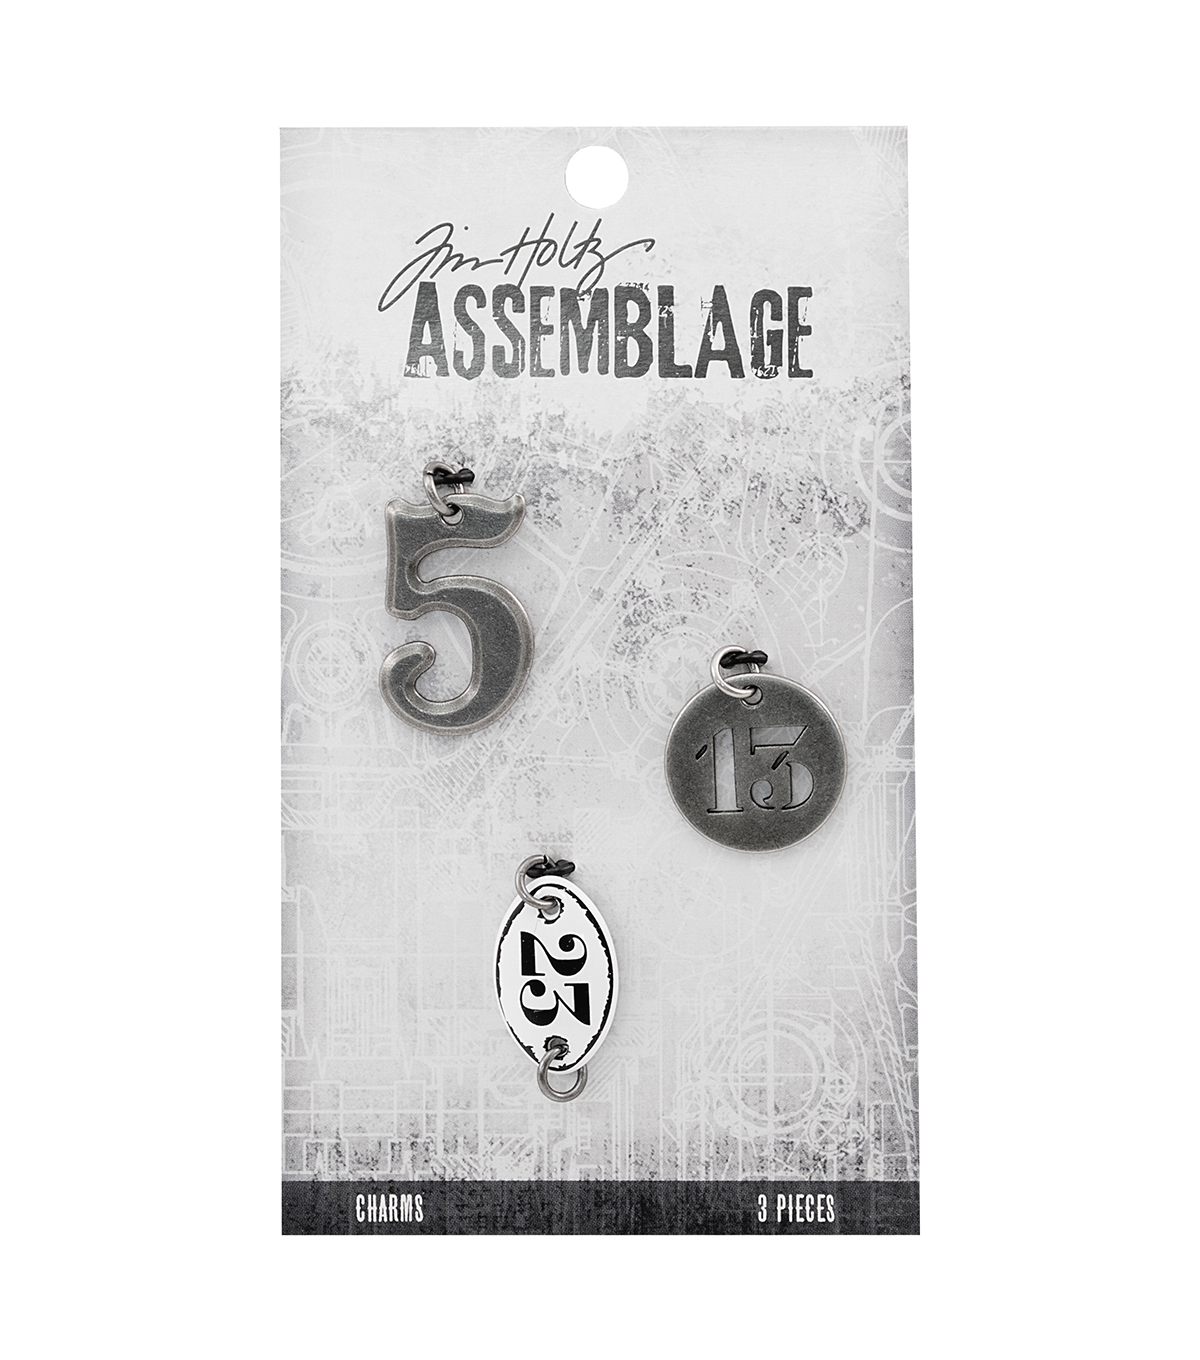 Tim Holtz Assemblage Pack of 3 Numbers Charms